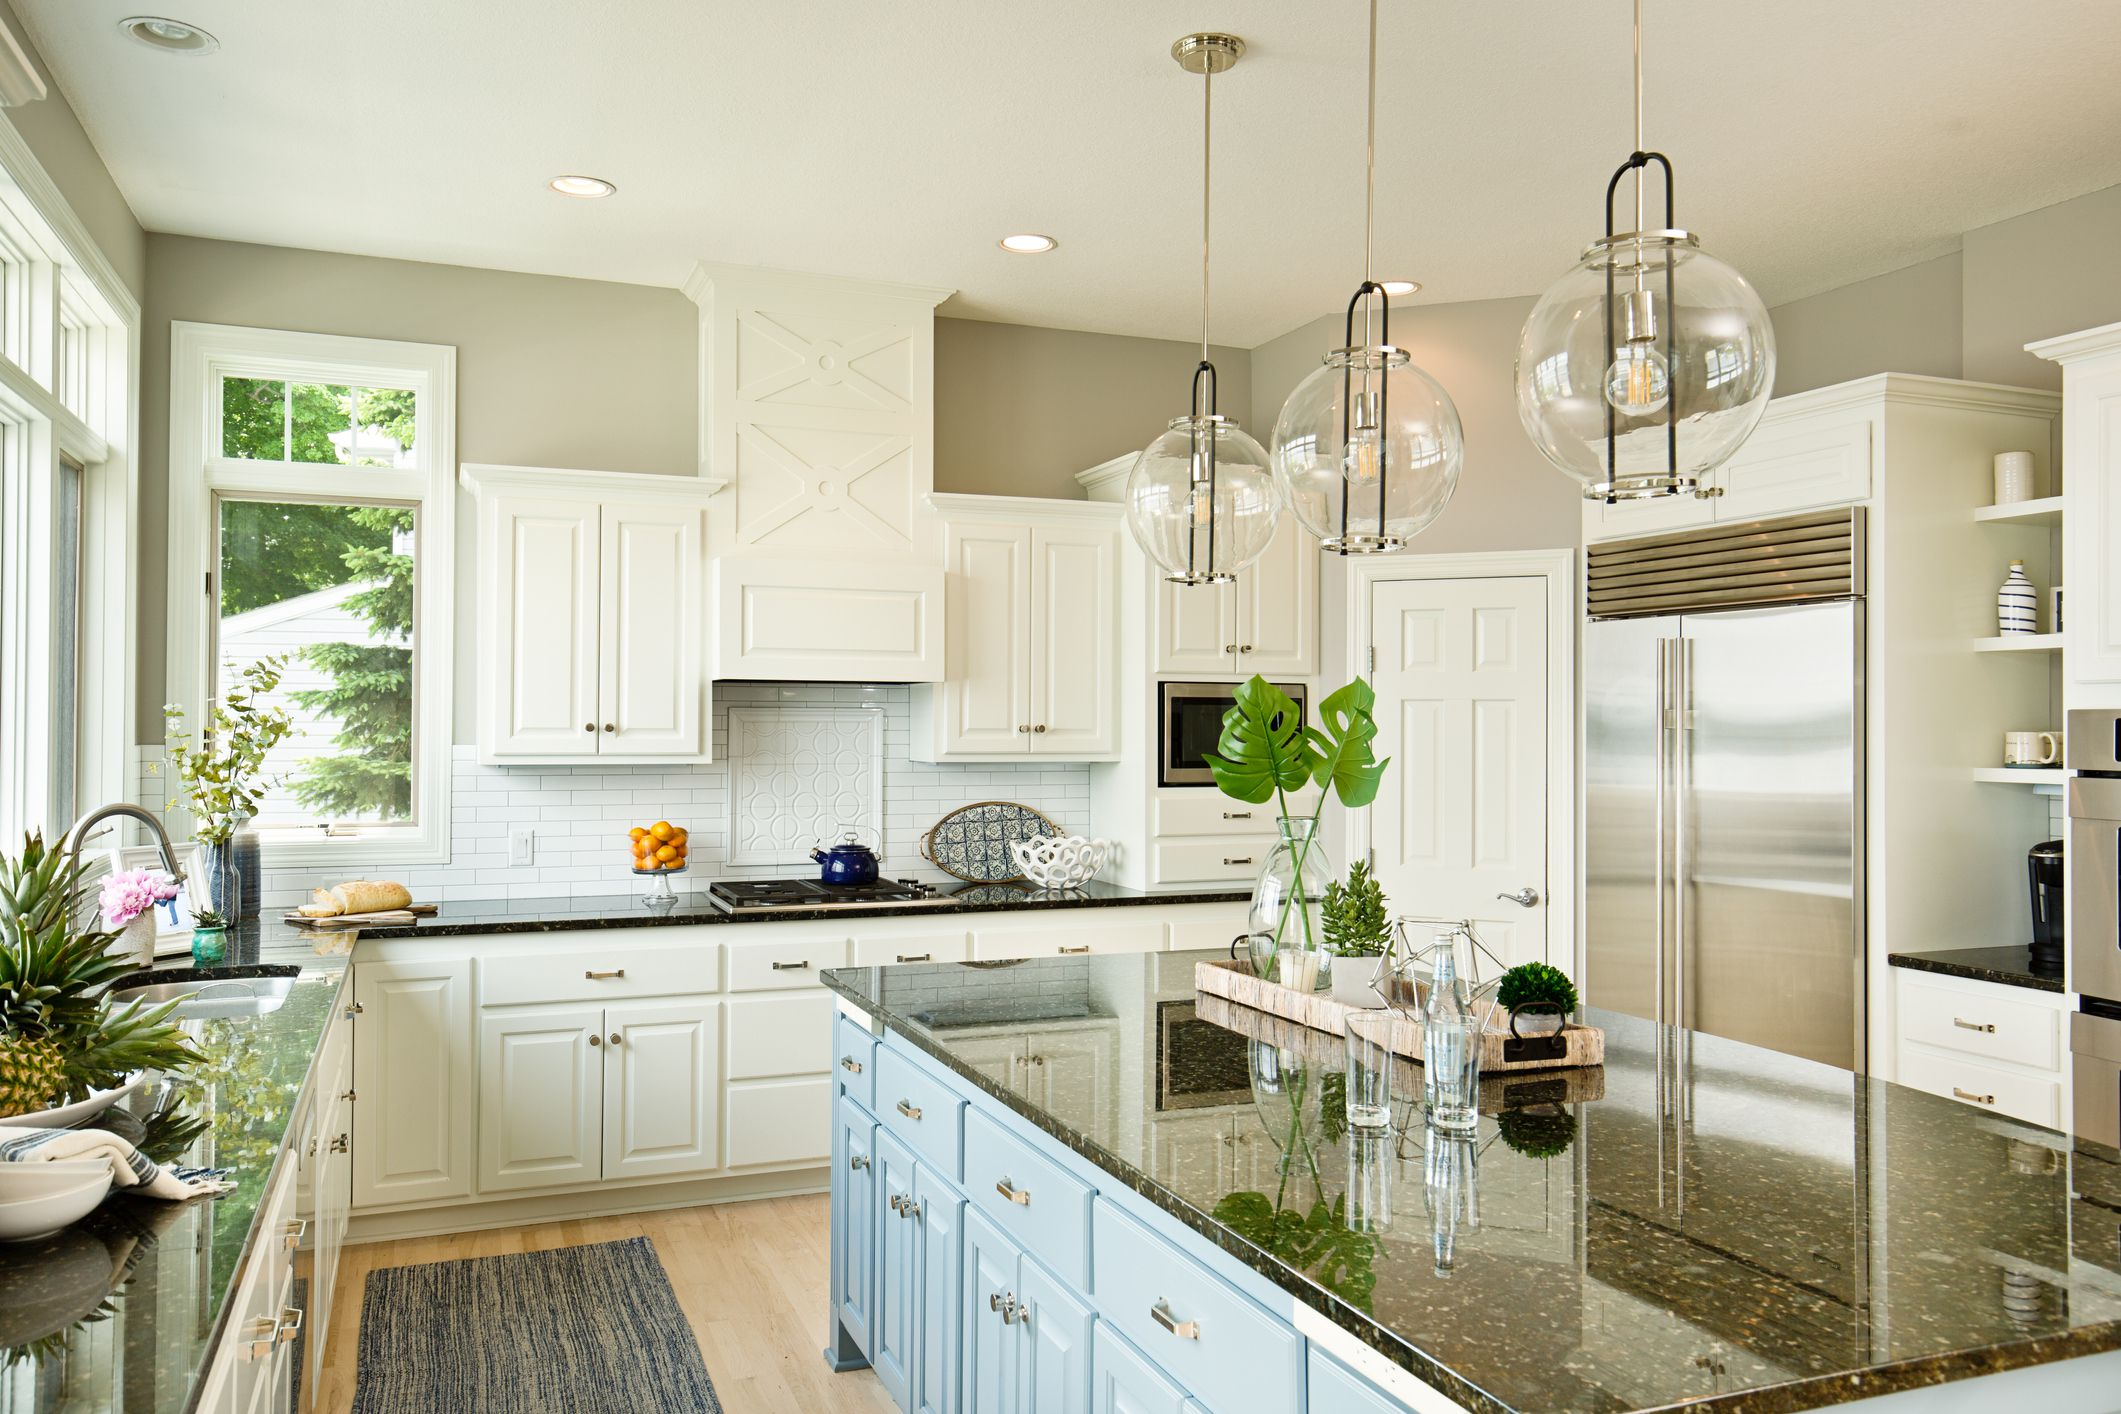 Using 10-by-10-Foot Package Pricing for Your Kitchen